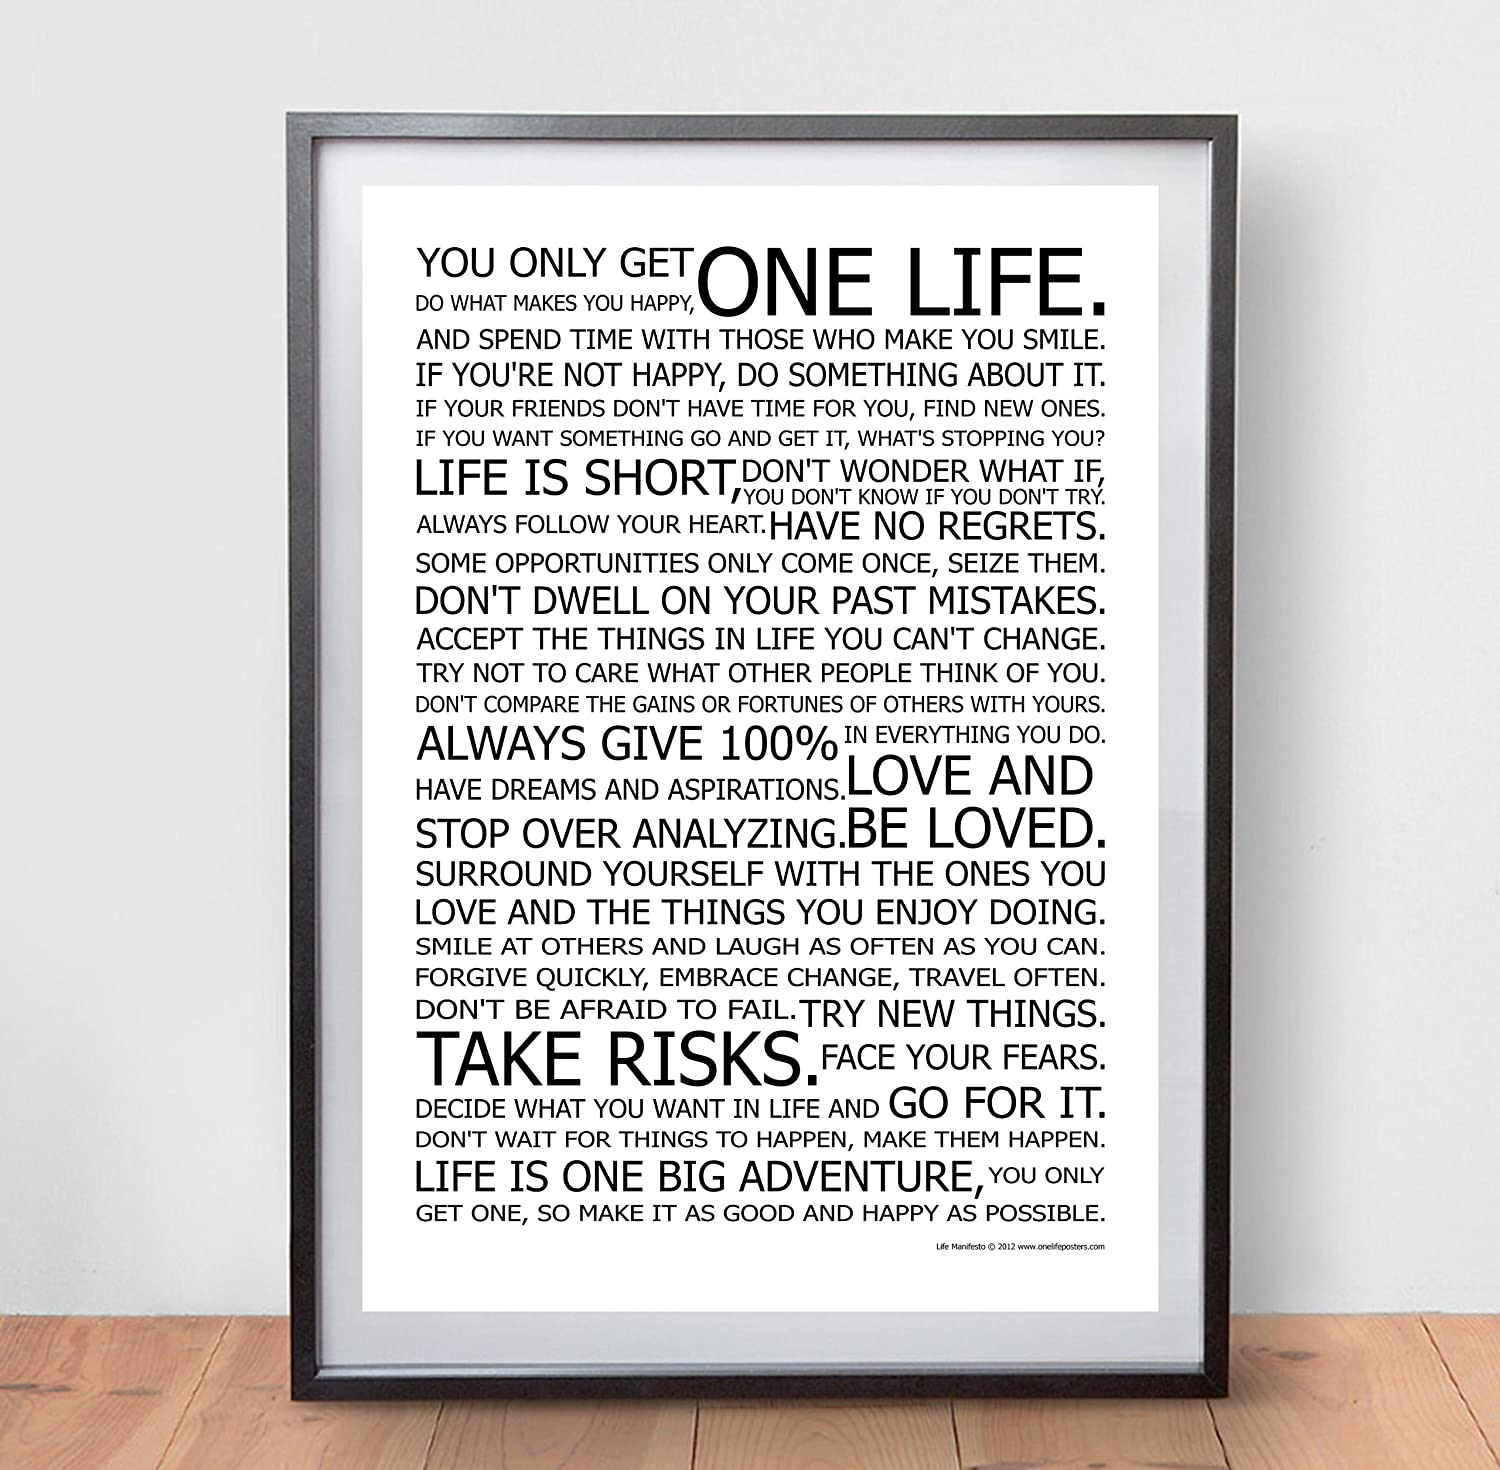 Life manifesto poster the world famous original motivational quote life manifesto poster the world famous original motivational quote wall art picture print size a2 420 x 594mm amazon kitchen home gumiabroncs Choice Image